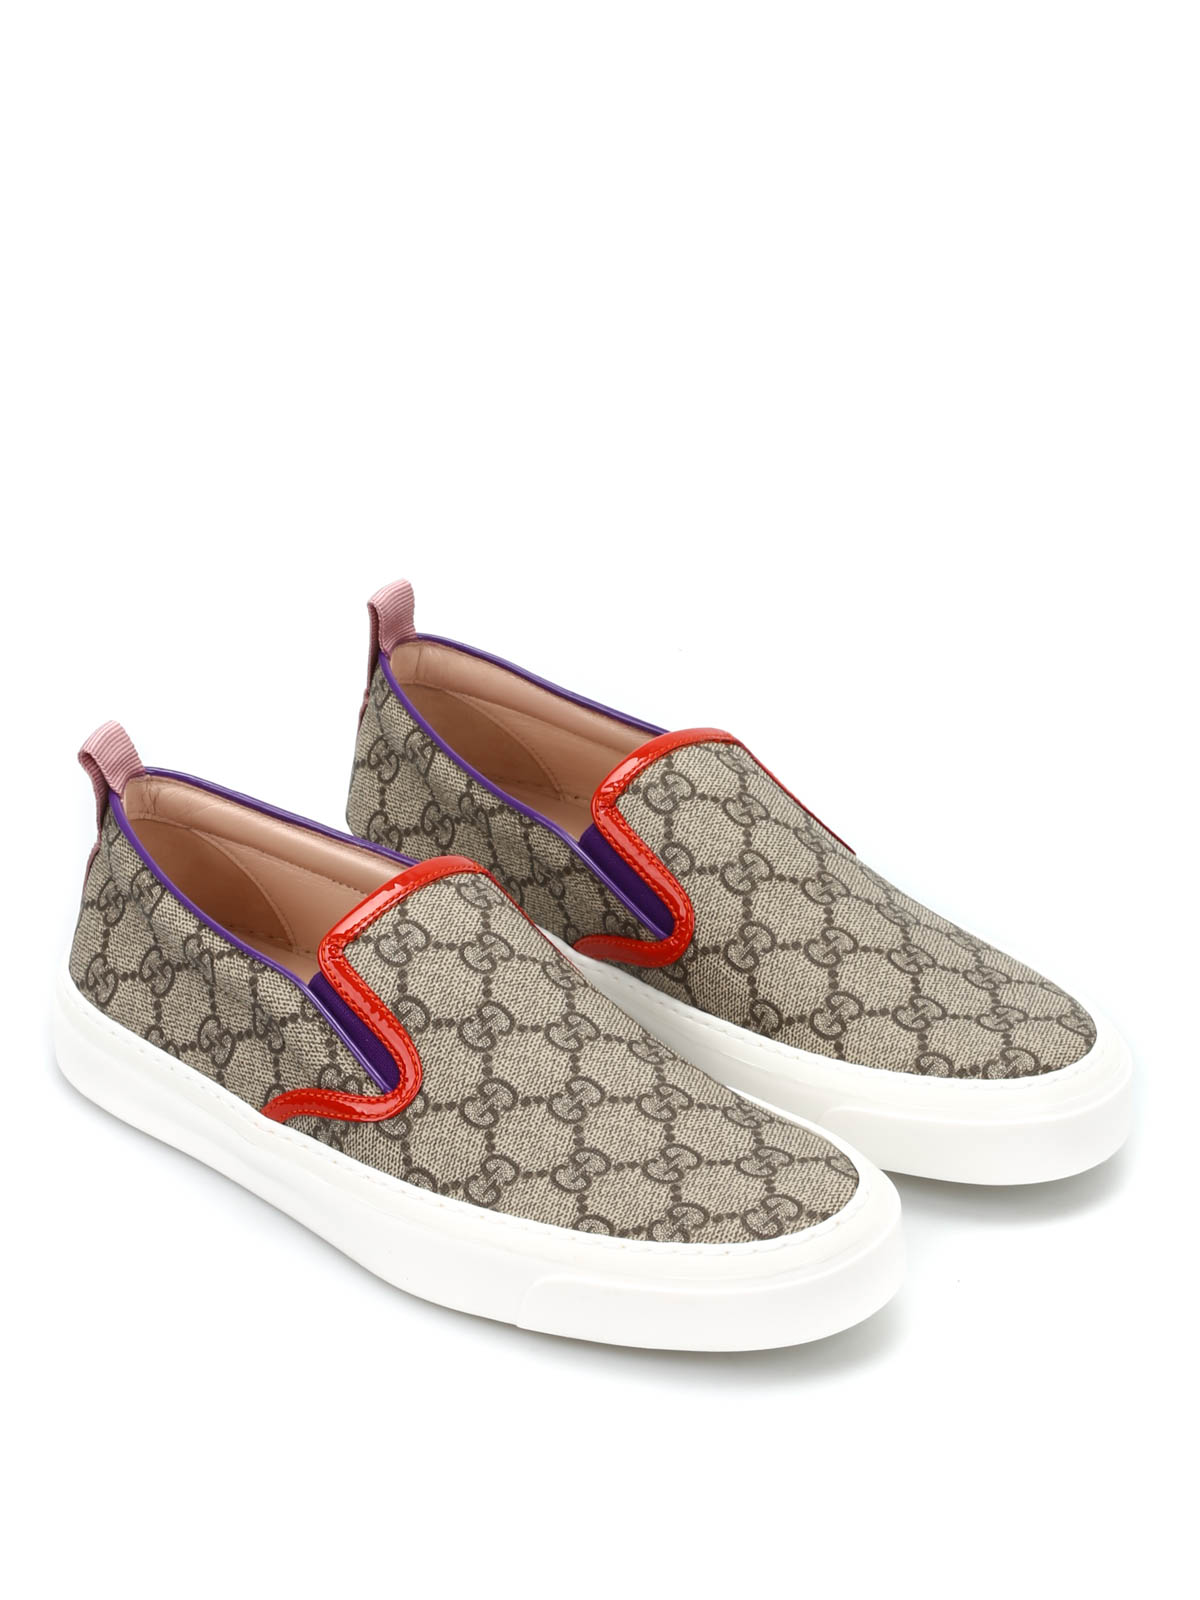 20e70ad3a365 Gucci - GG slip-on sneakers - Loafers   Slippers - 408511 KLQO0 9768